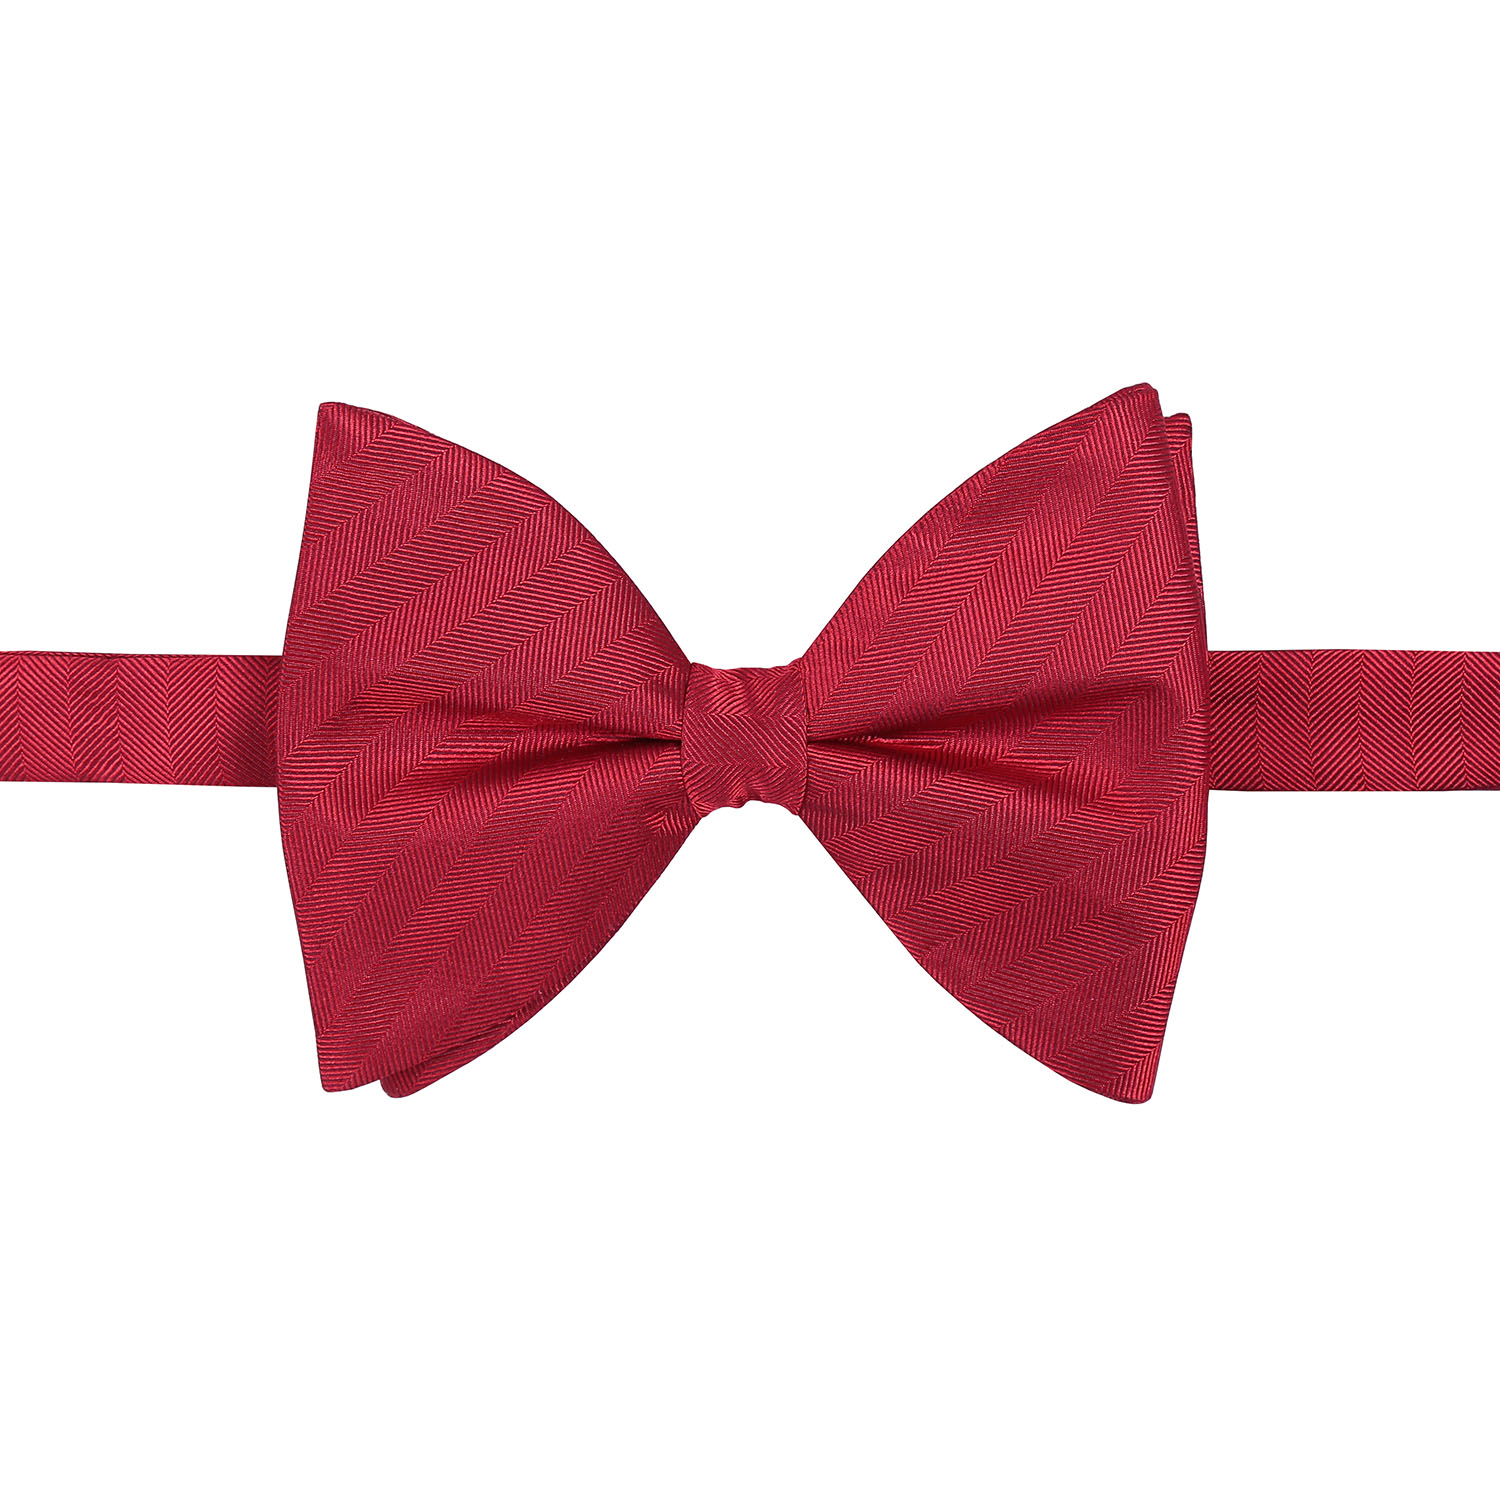 e68e268e5aa0 Red Herringbone Silk Pre-Tied Butterfly Bow Tie - James Alexander